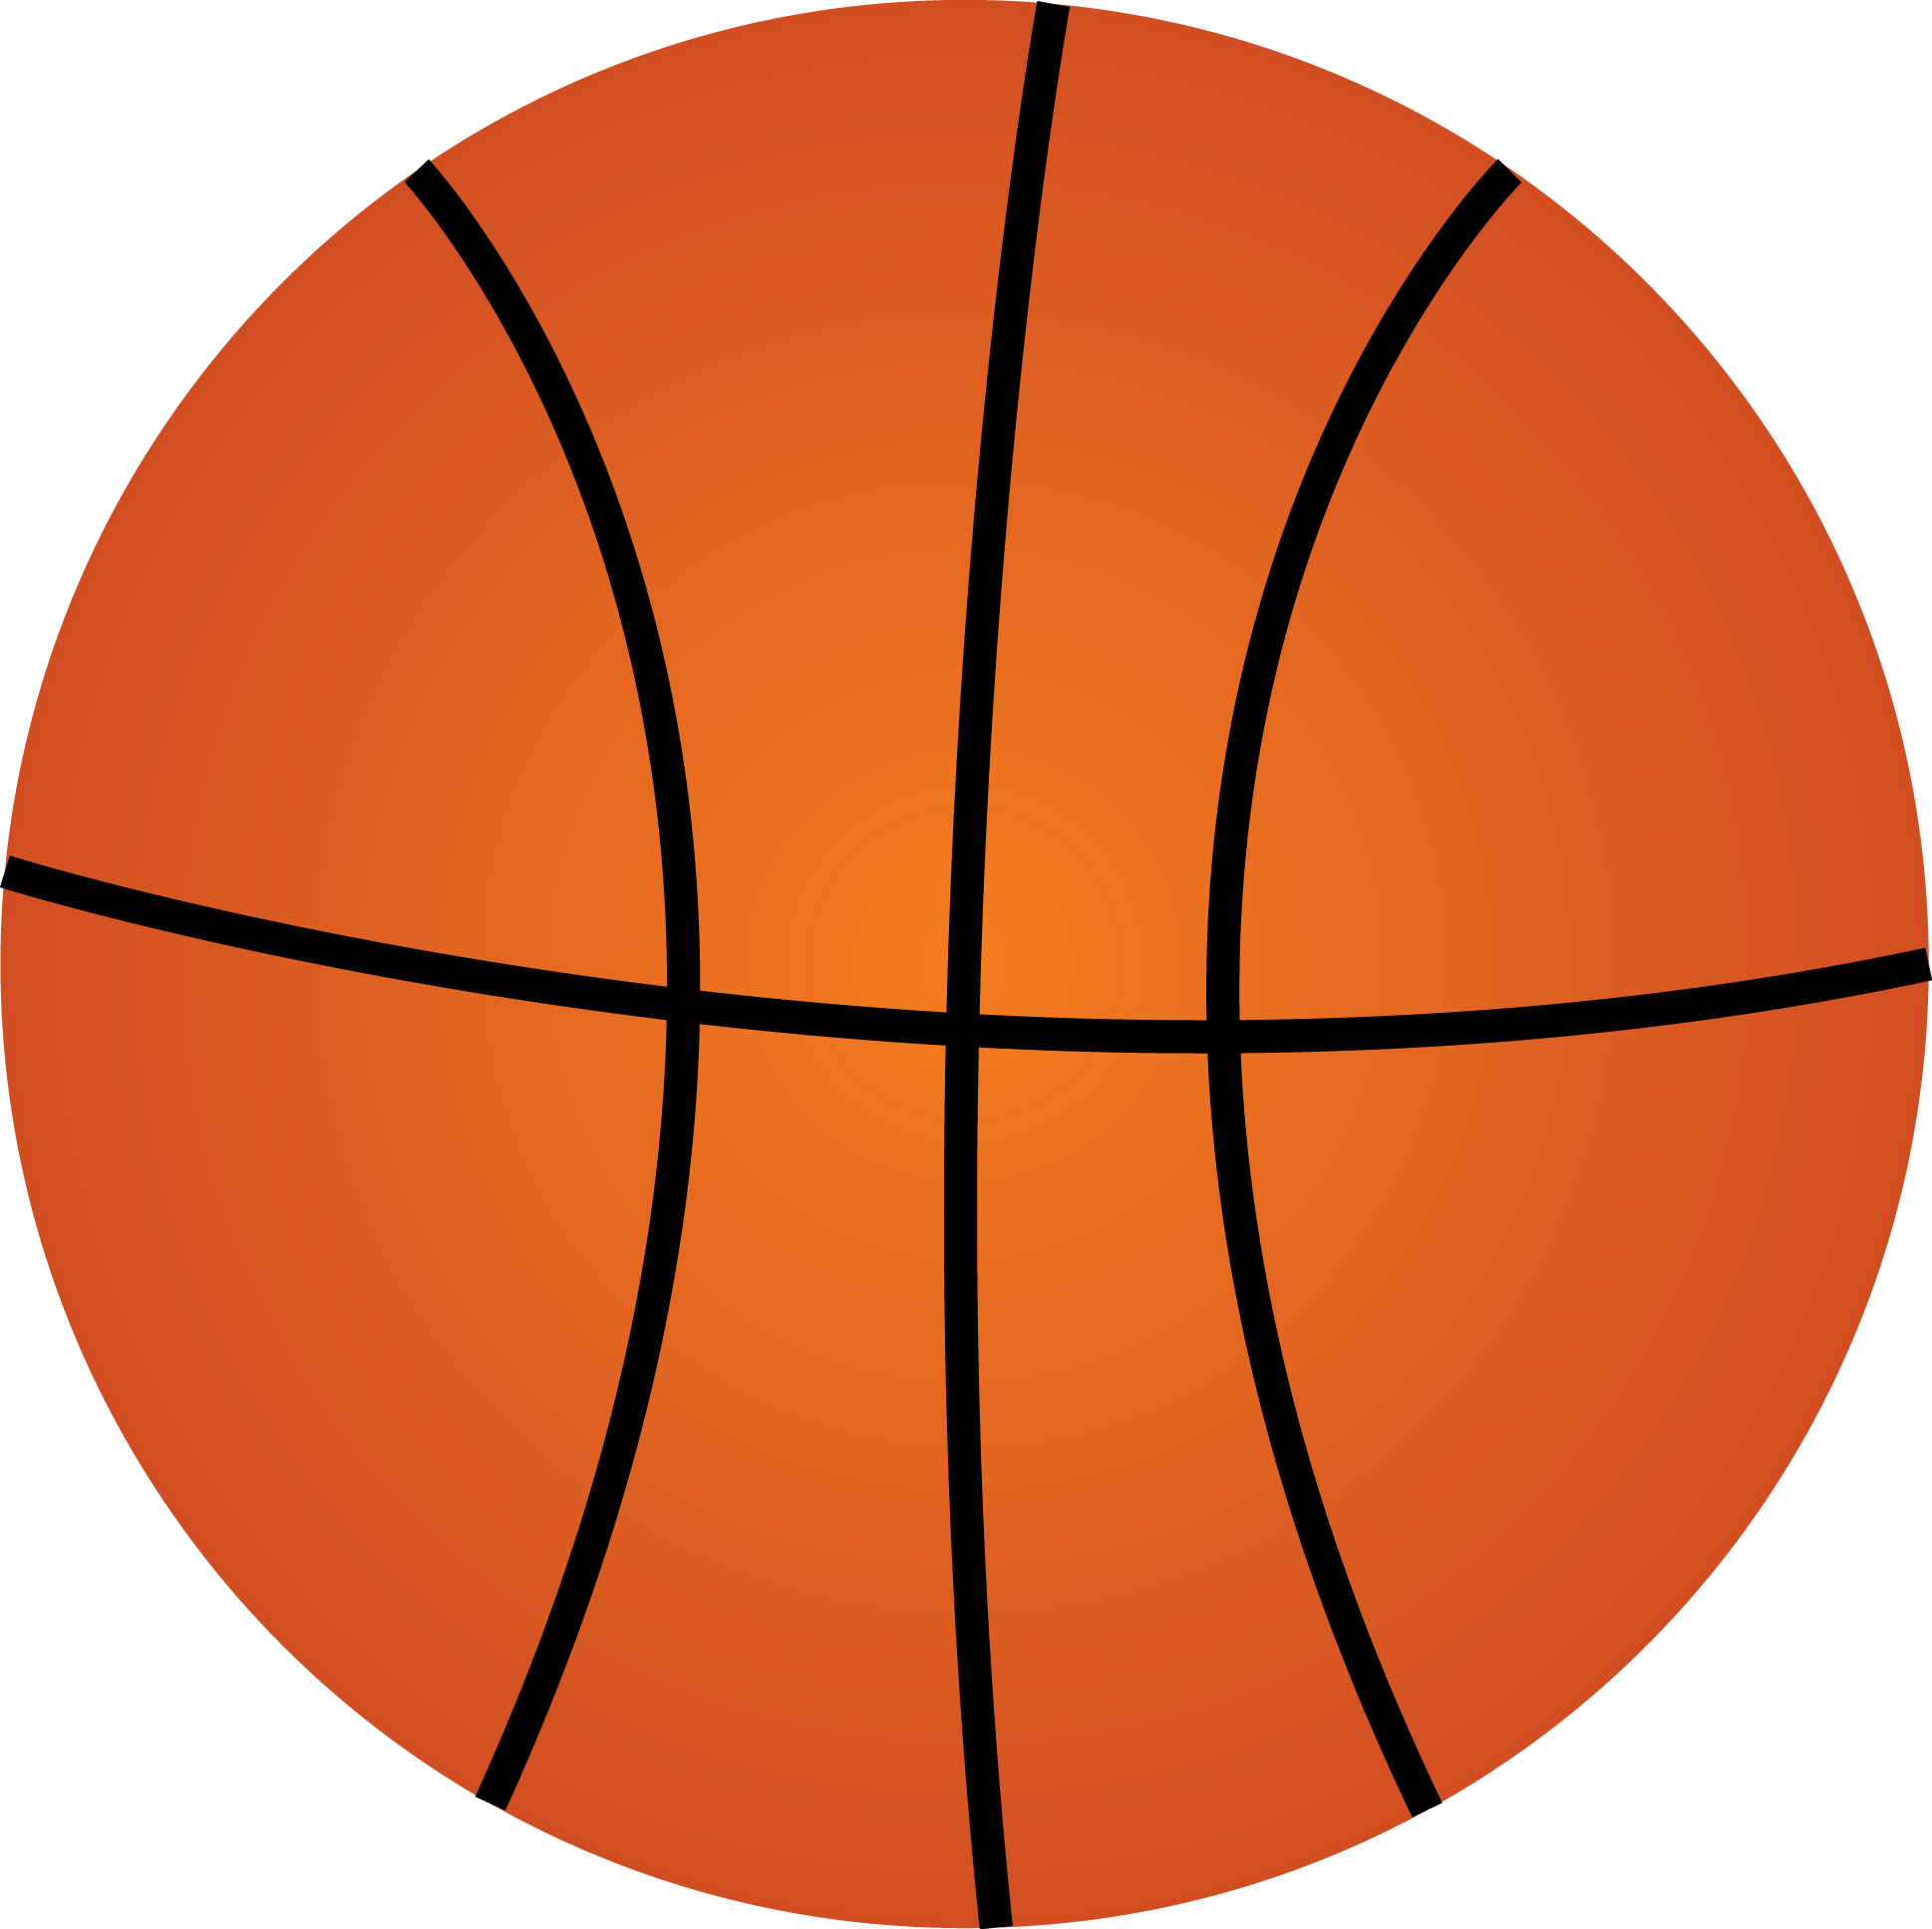 Basketball volunteers needed clipart graphic black and white Hoopfest 2016: By the Numbers | The Spokesman-Review graphic black and white